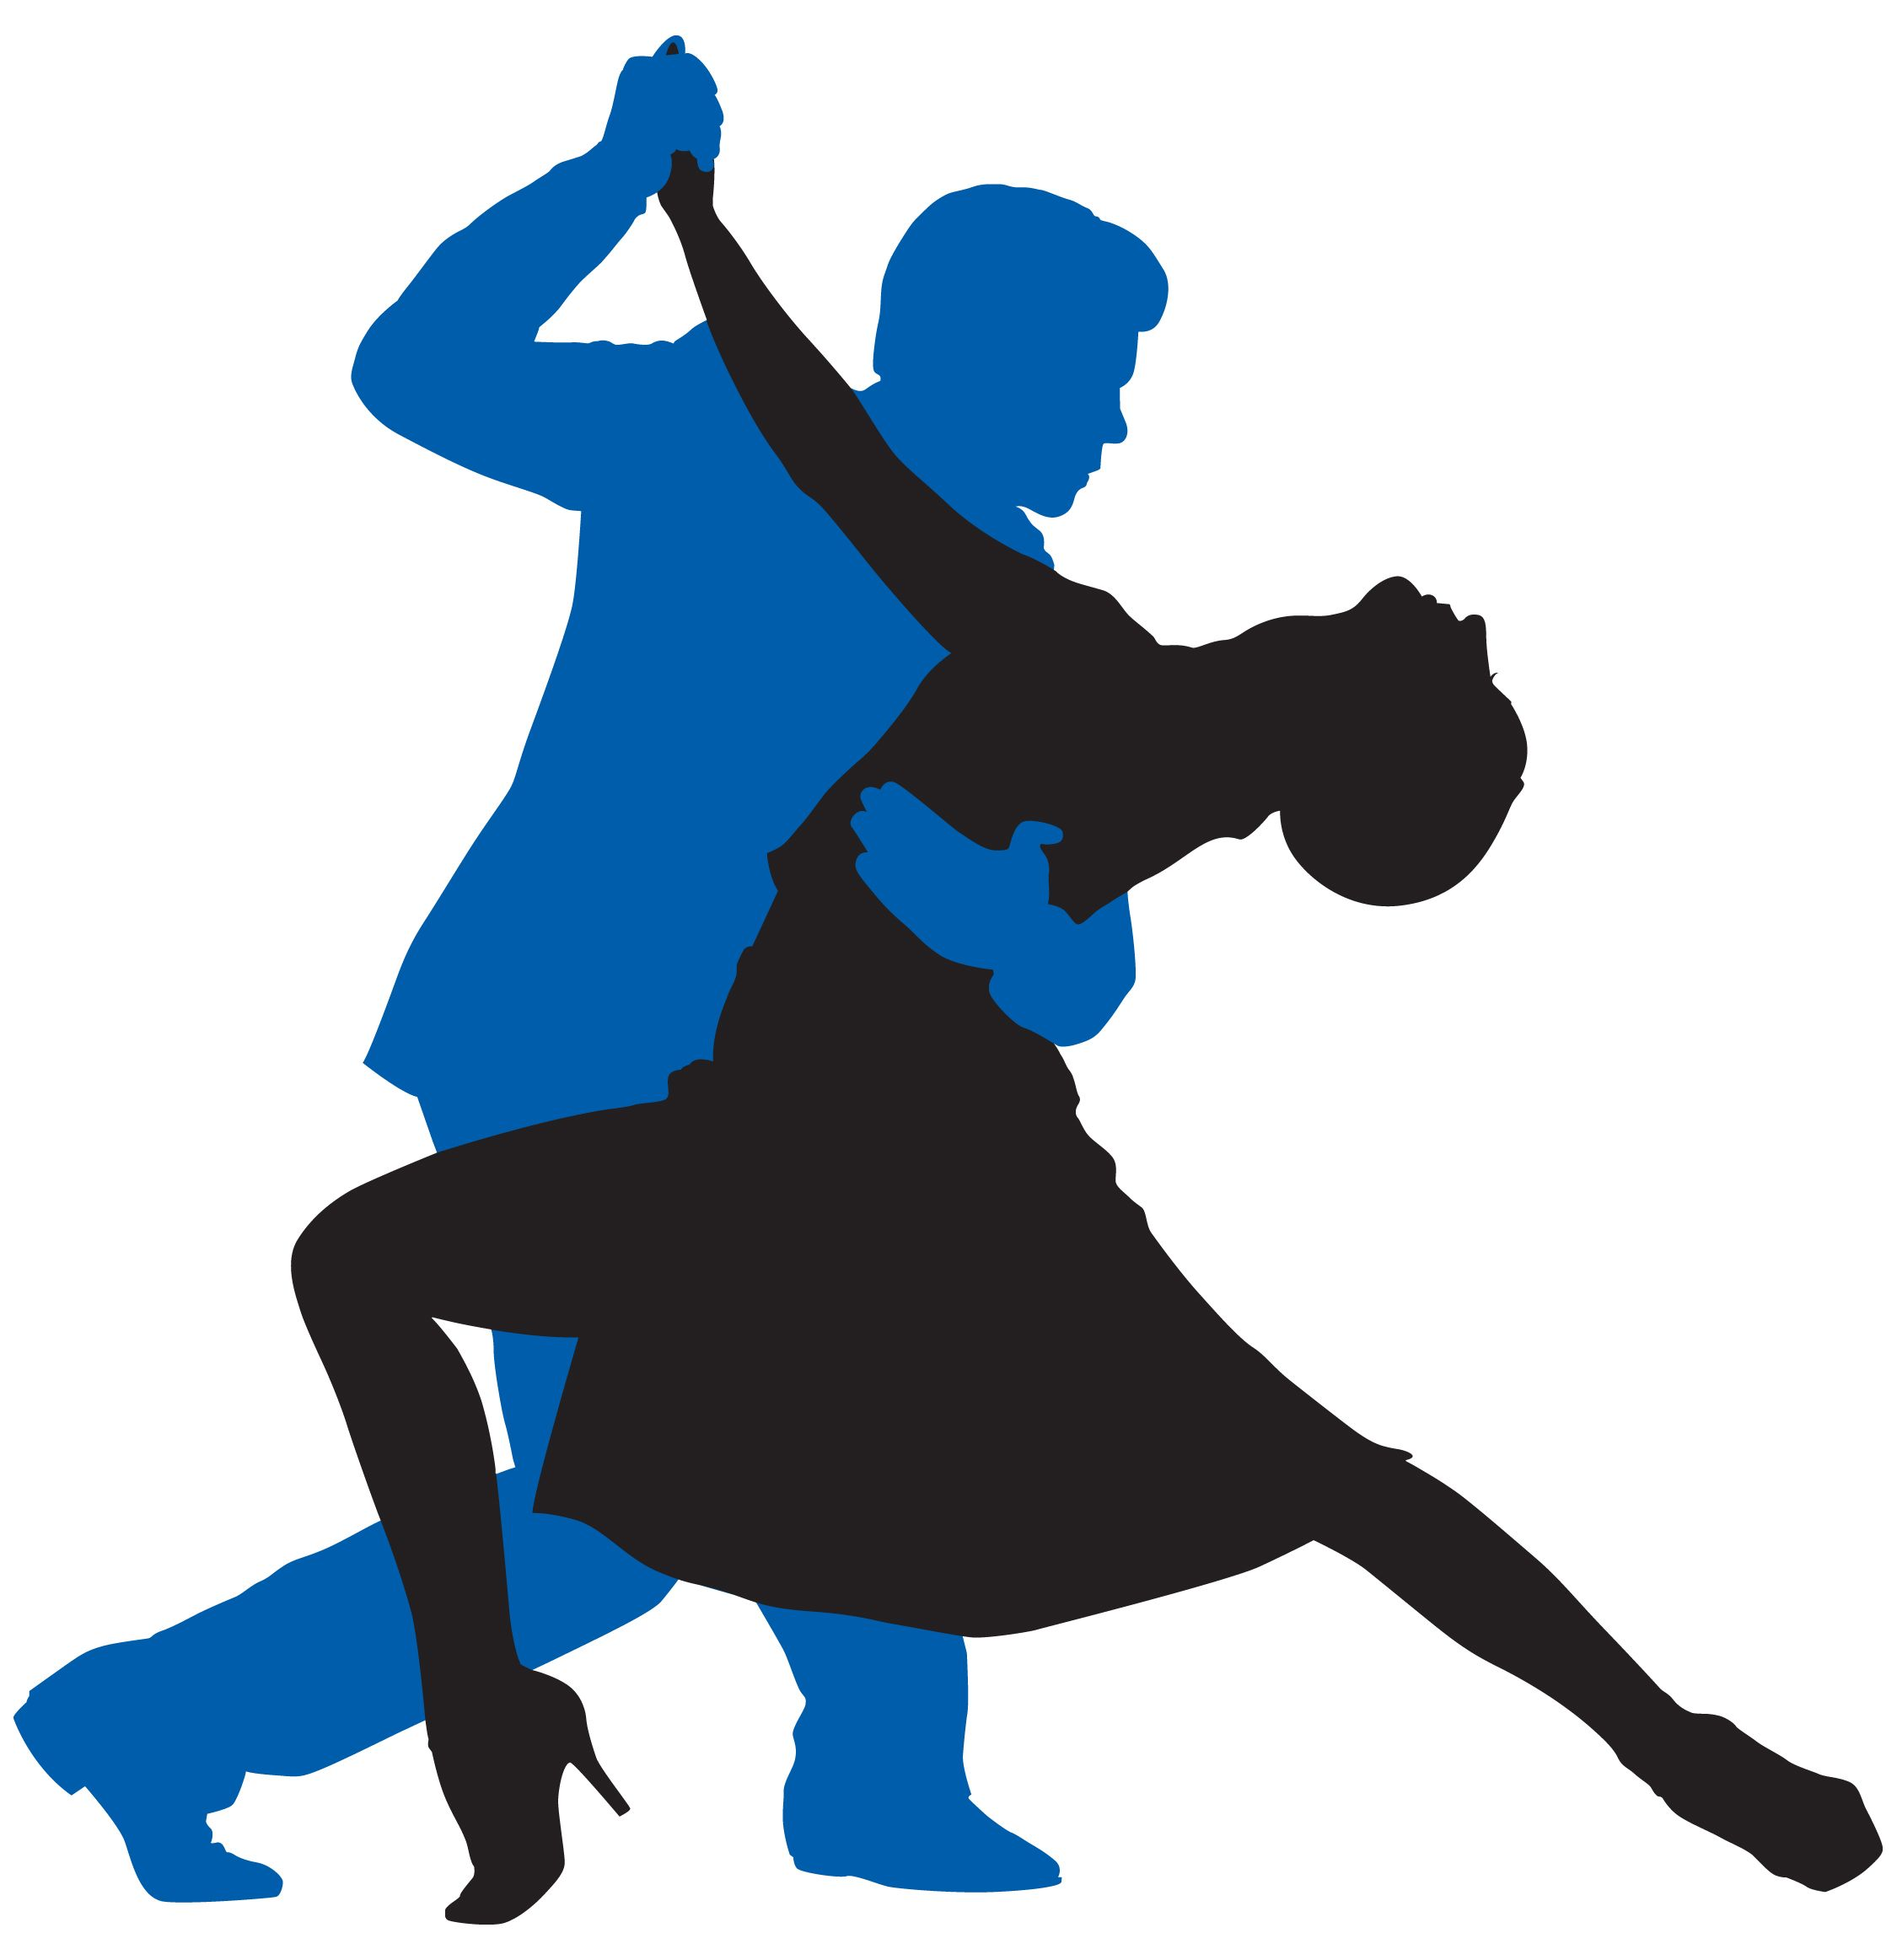 Dancing clipart dance class. Salsa etiquette for leads